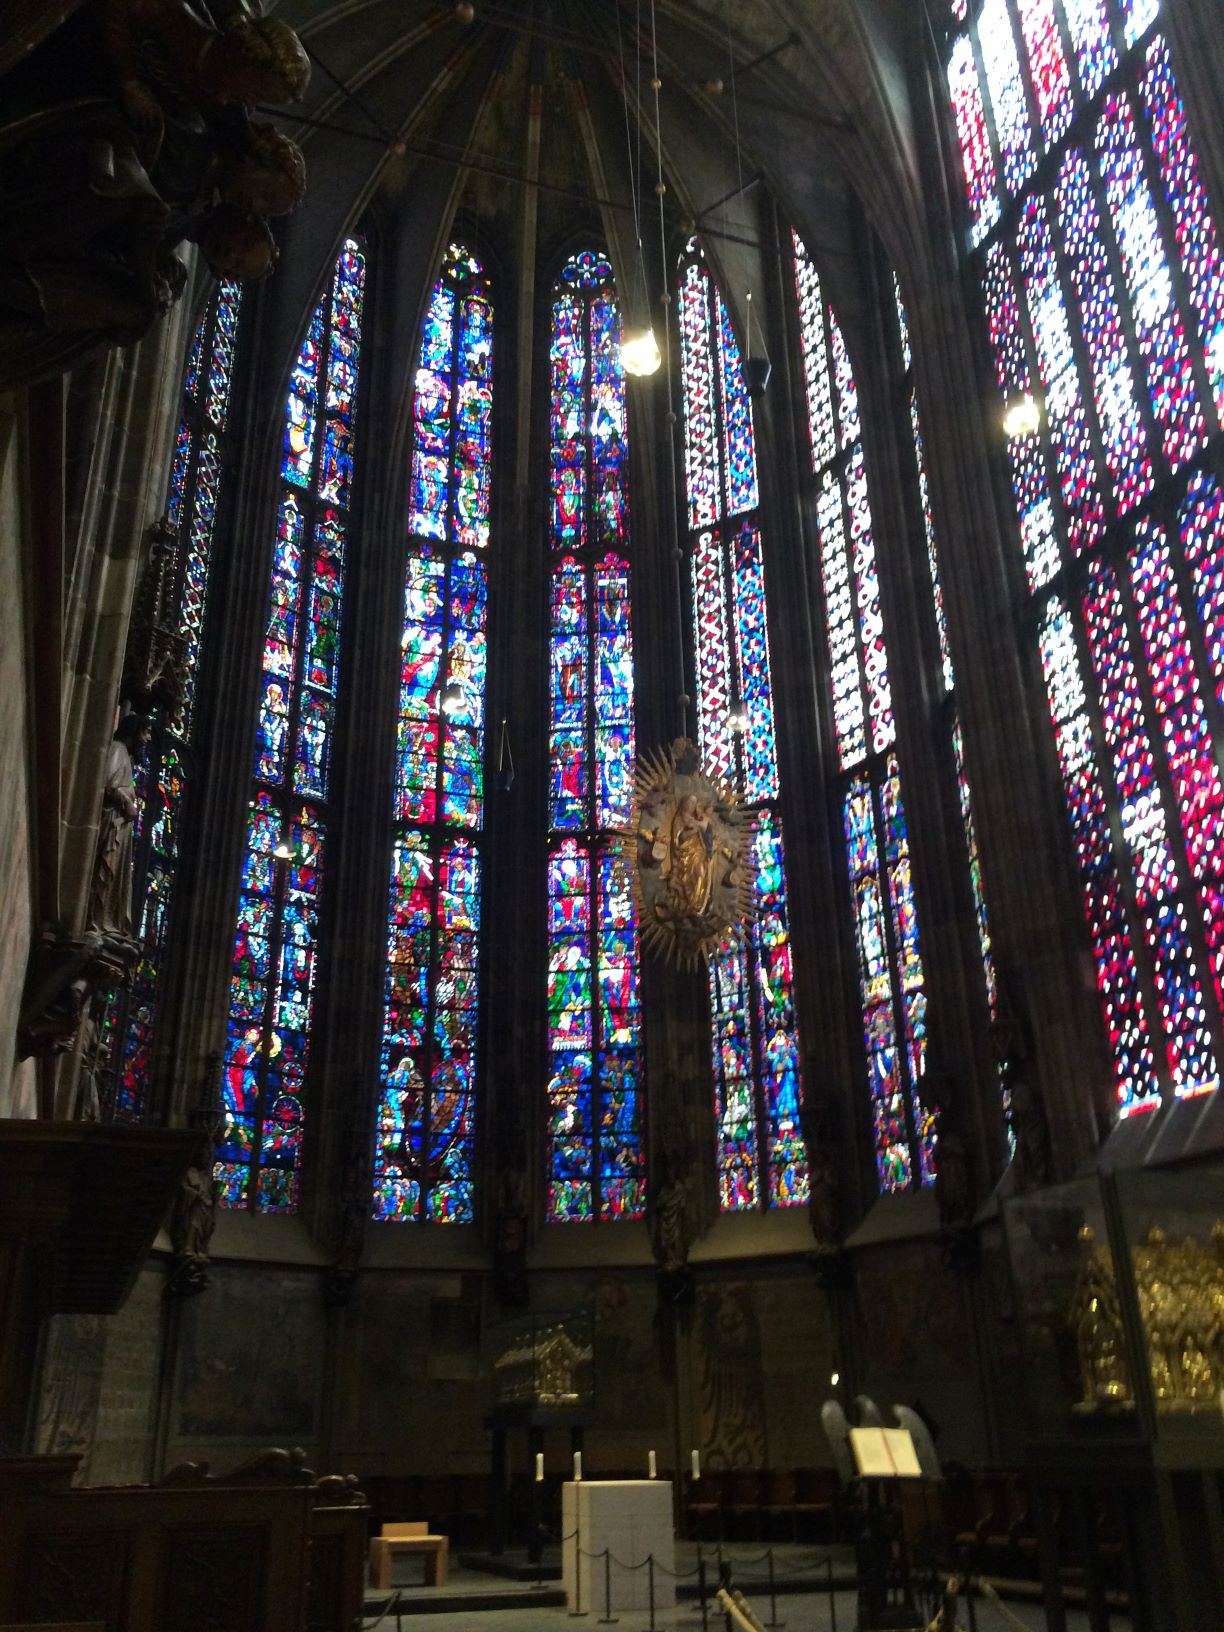 Partial interior of Aachen cathedral